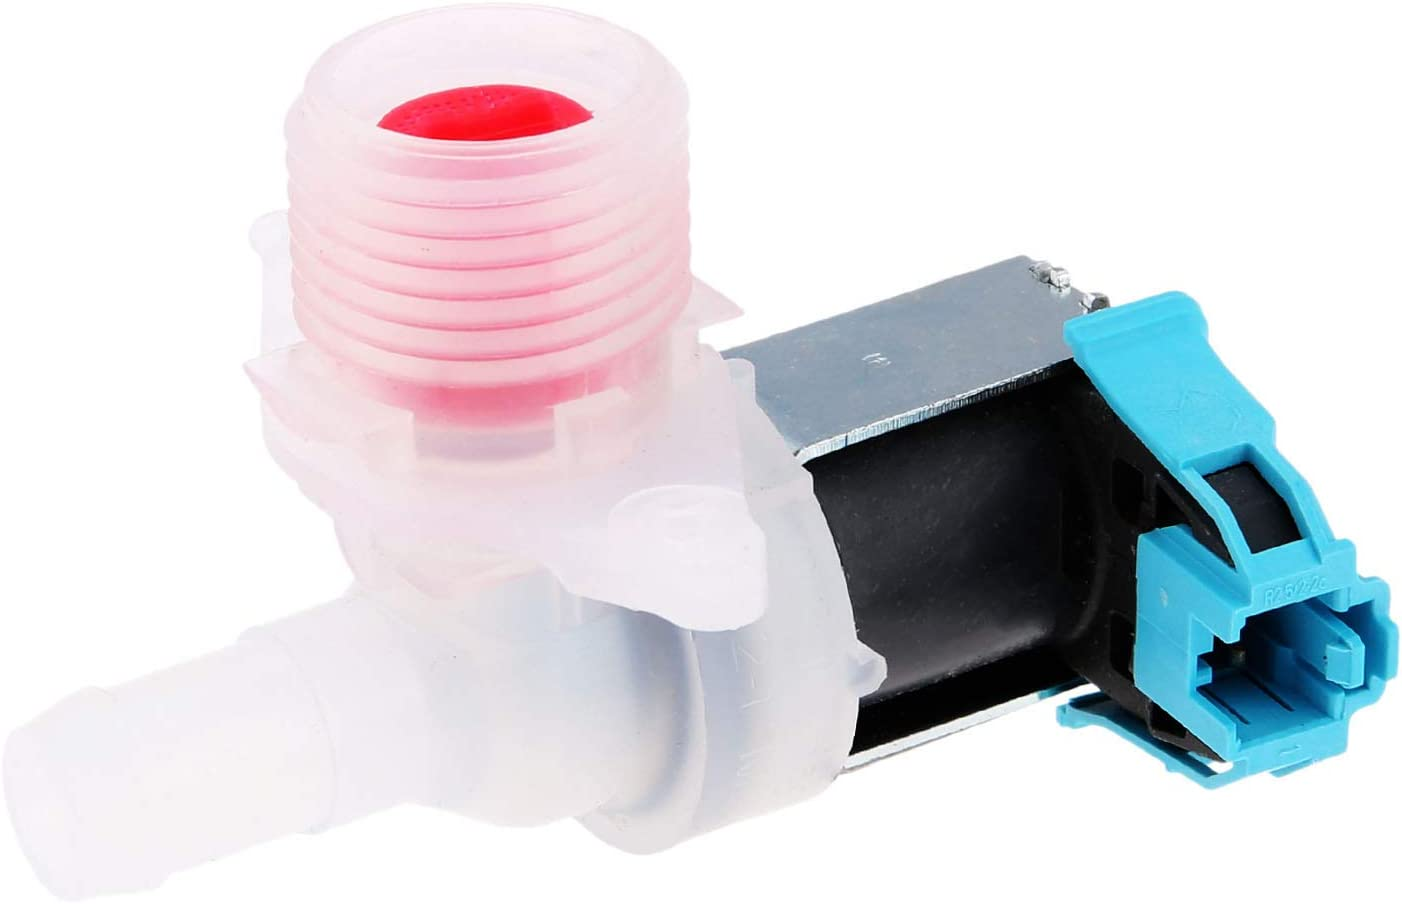 W10212598 Washer Water Inlet Valve Replacement for Whirlpool, Kenmore Washing Machine Replaces AP4482374 PS2372236 WPW10212598